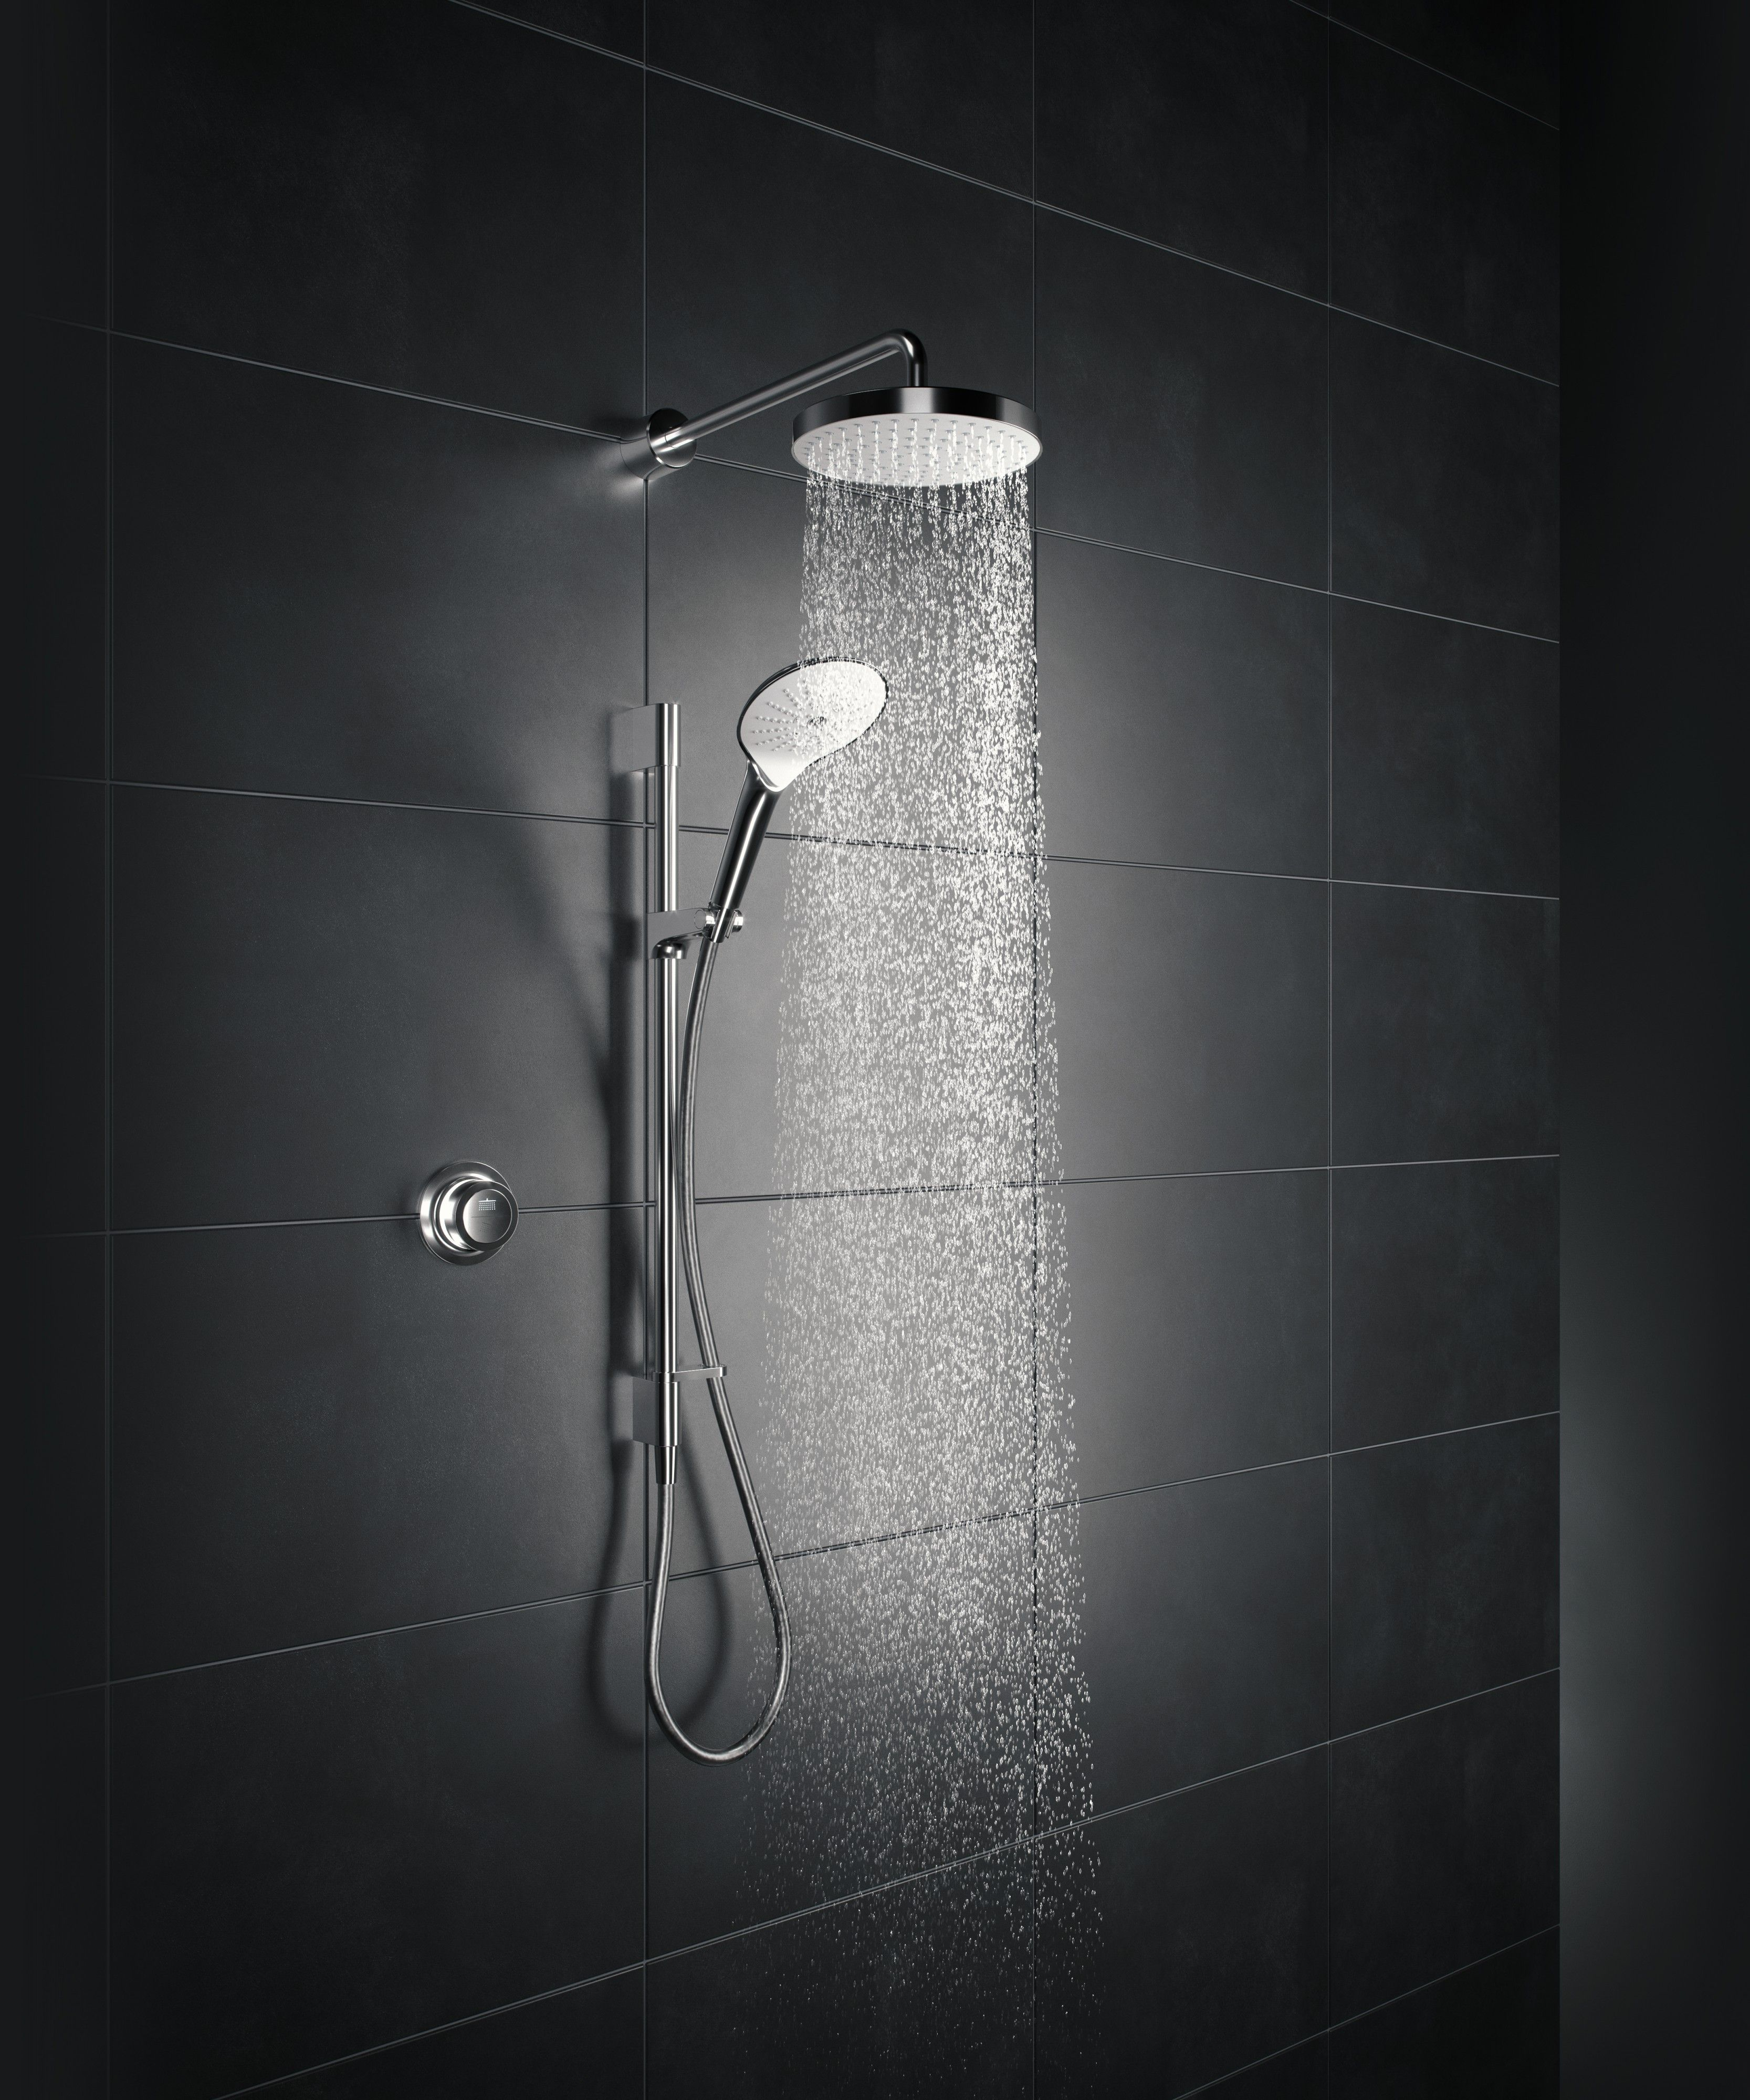 Introducing The New Mira Mode Digital Shower, Designed